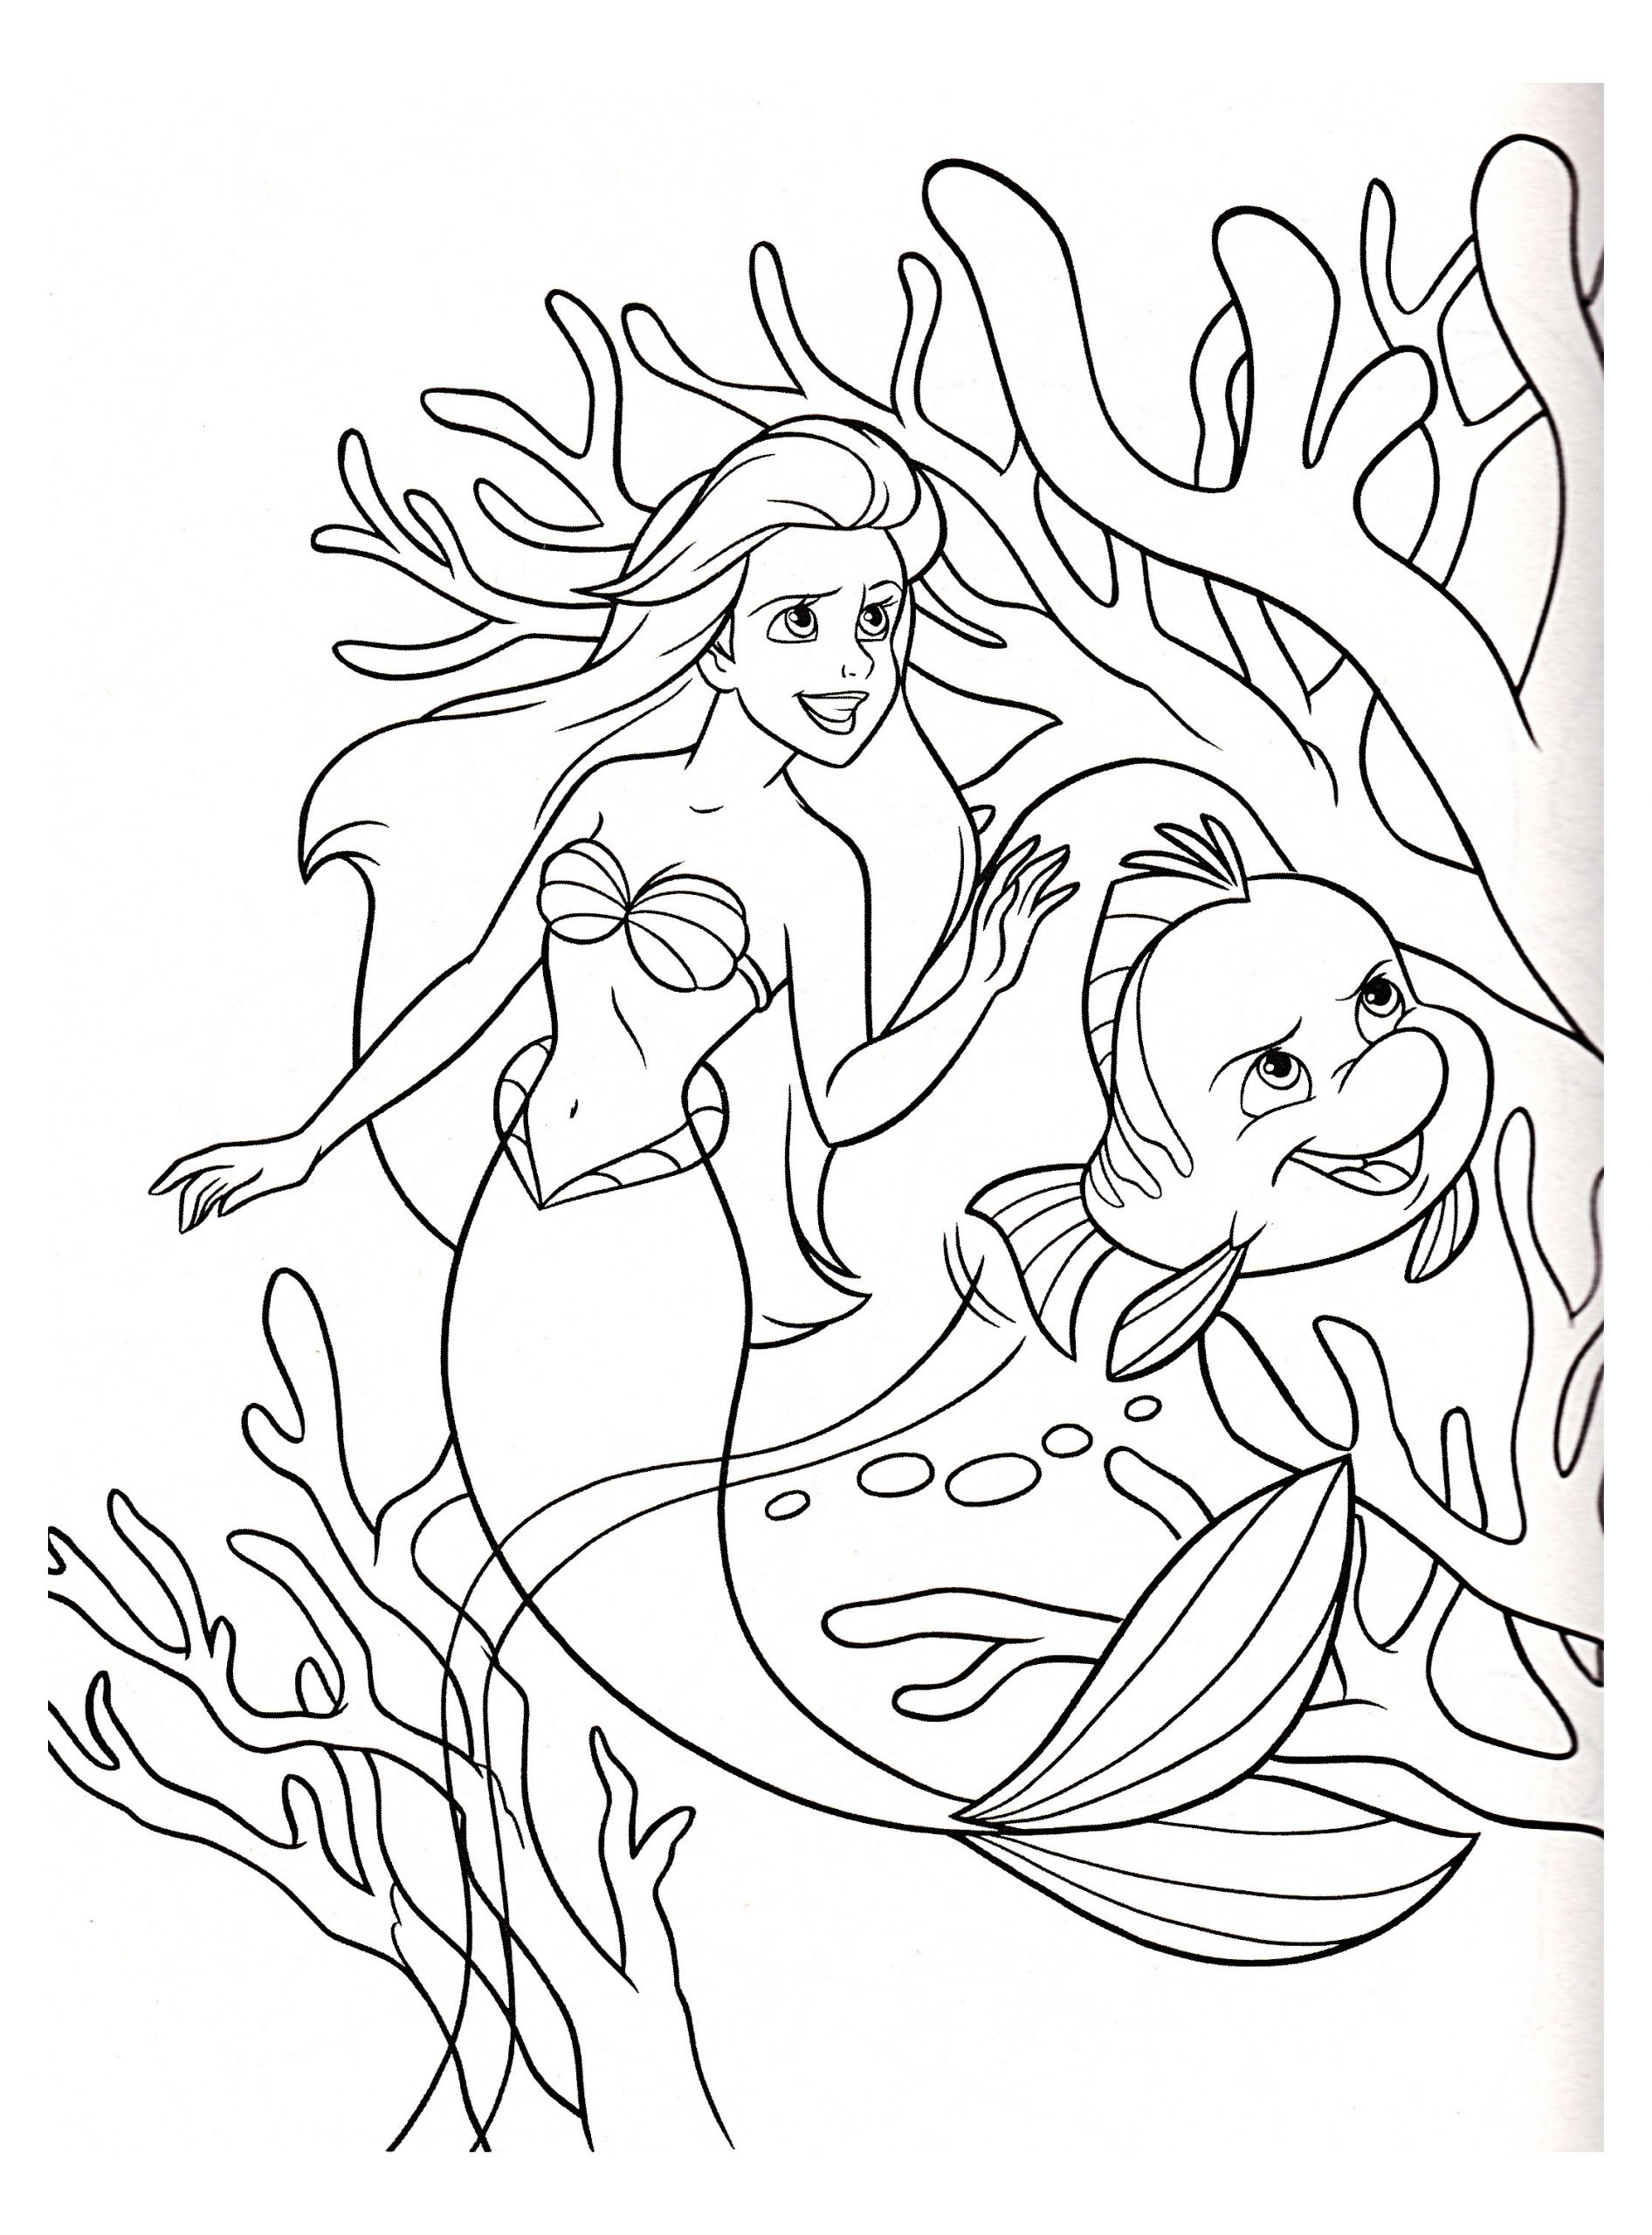 Children Coloring Page  The little mermaid to color for children The Little